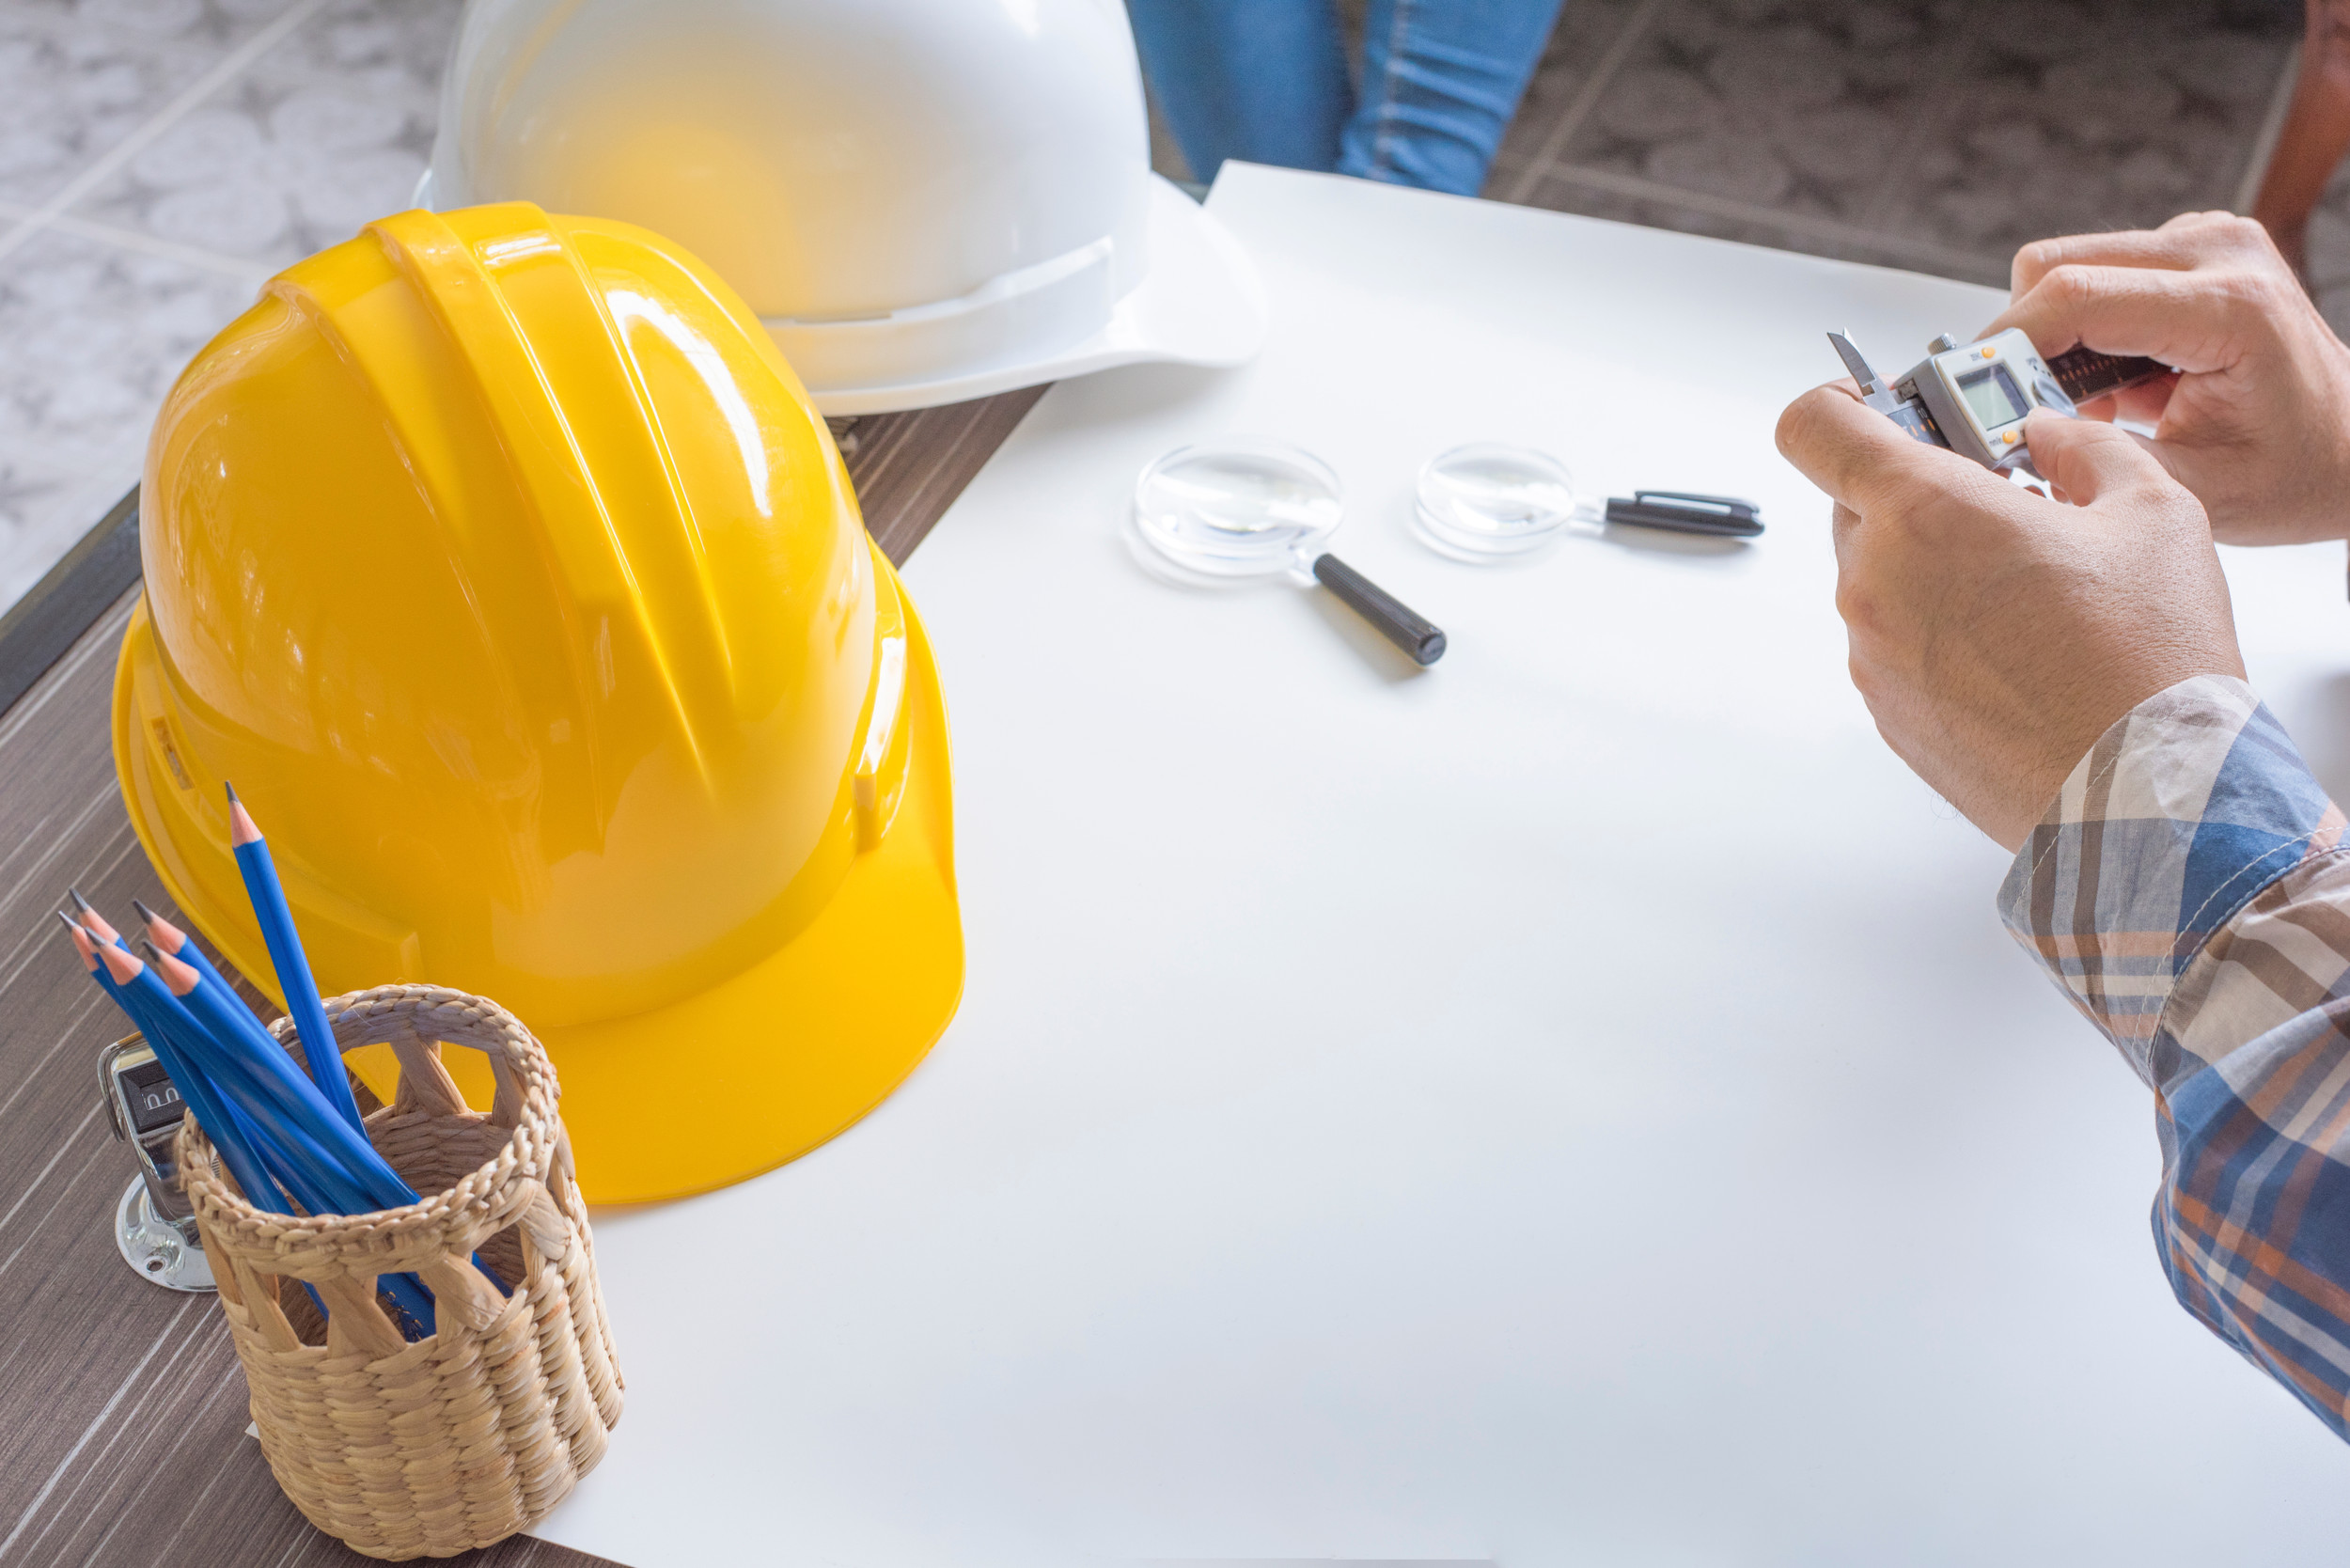 Spike in construction lending one likely outcome of reg relief